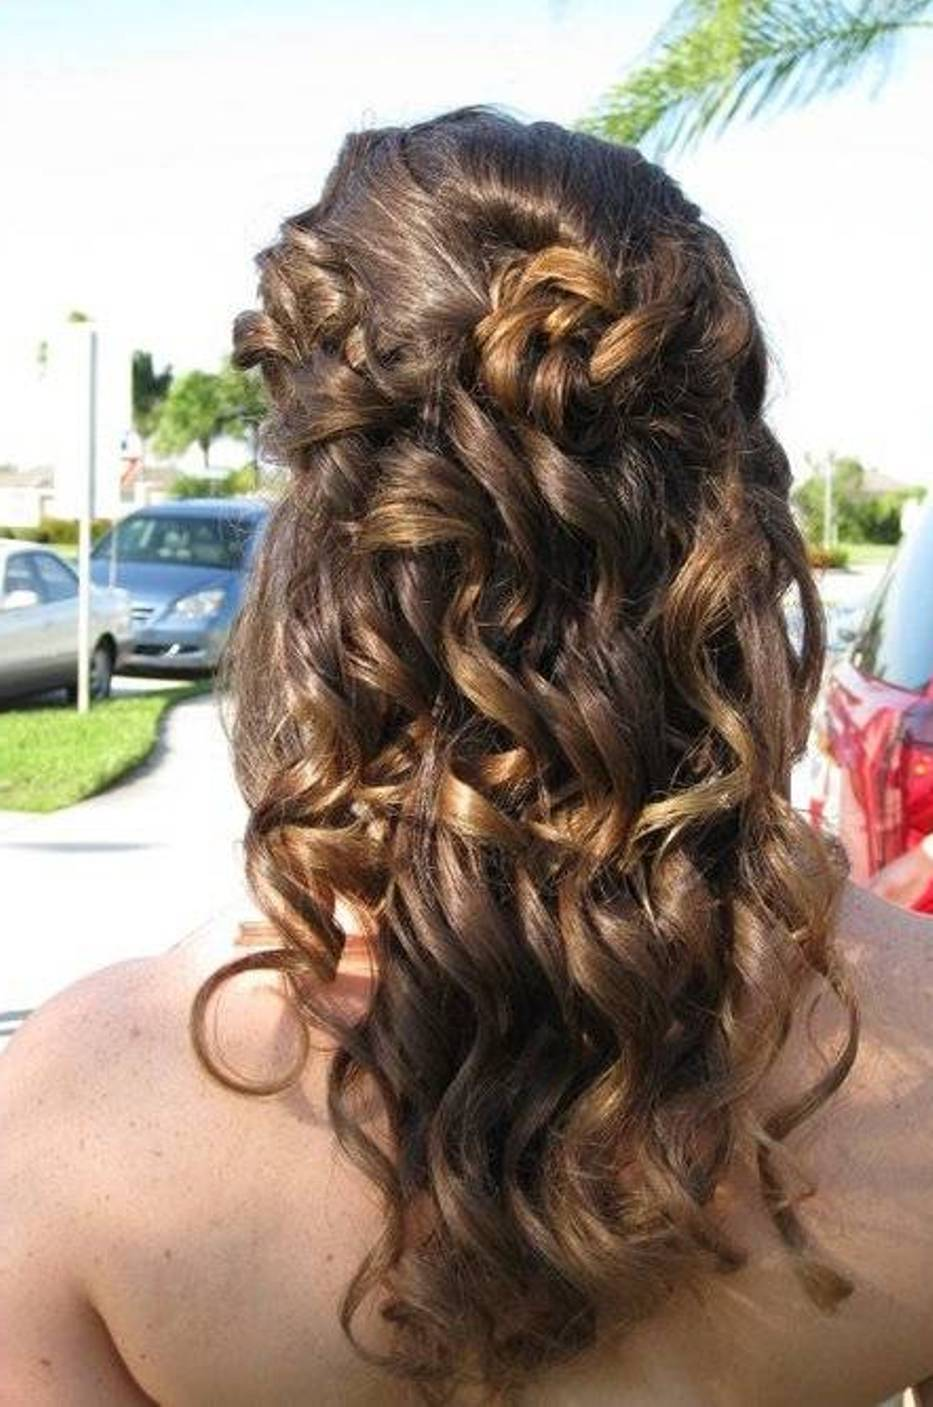 Most Adorable Curly Homecoming Hairstyles Fave HairStyles